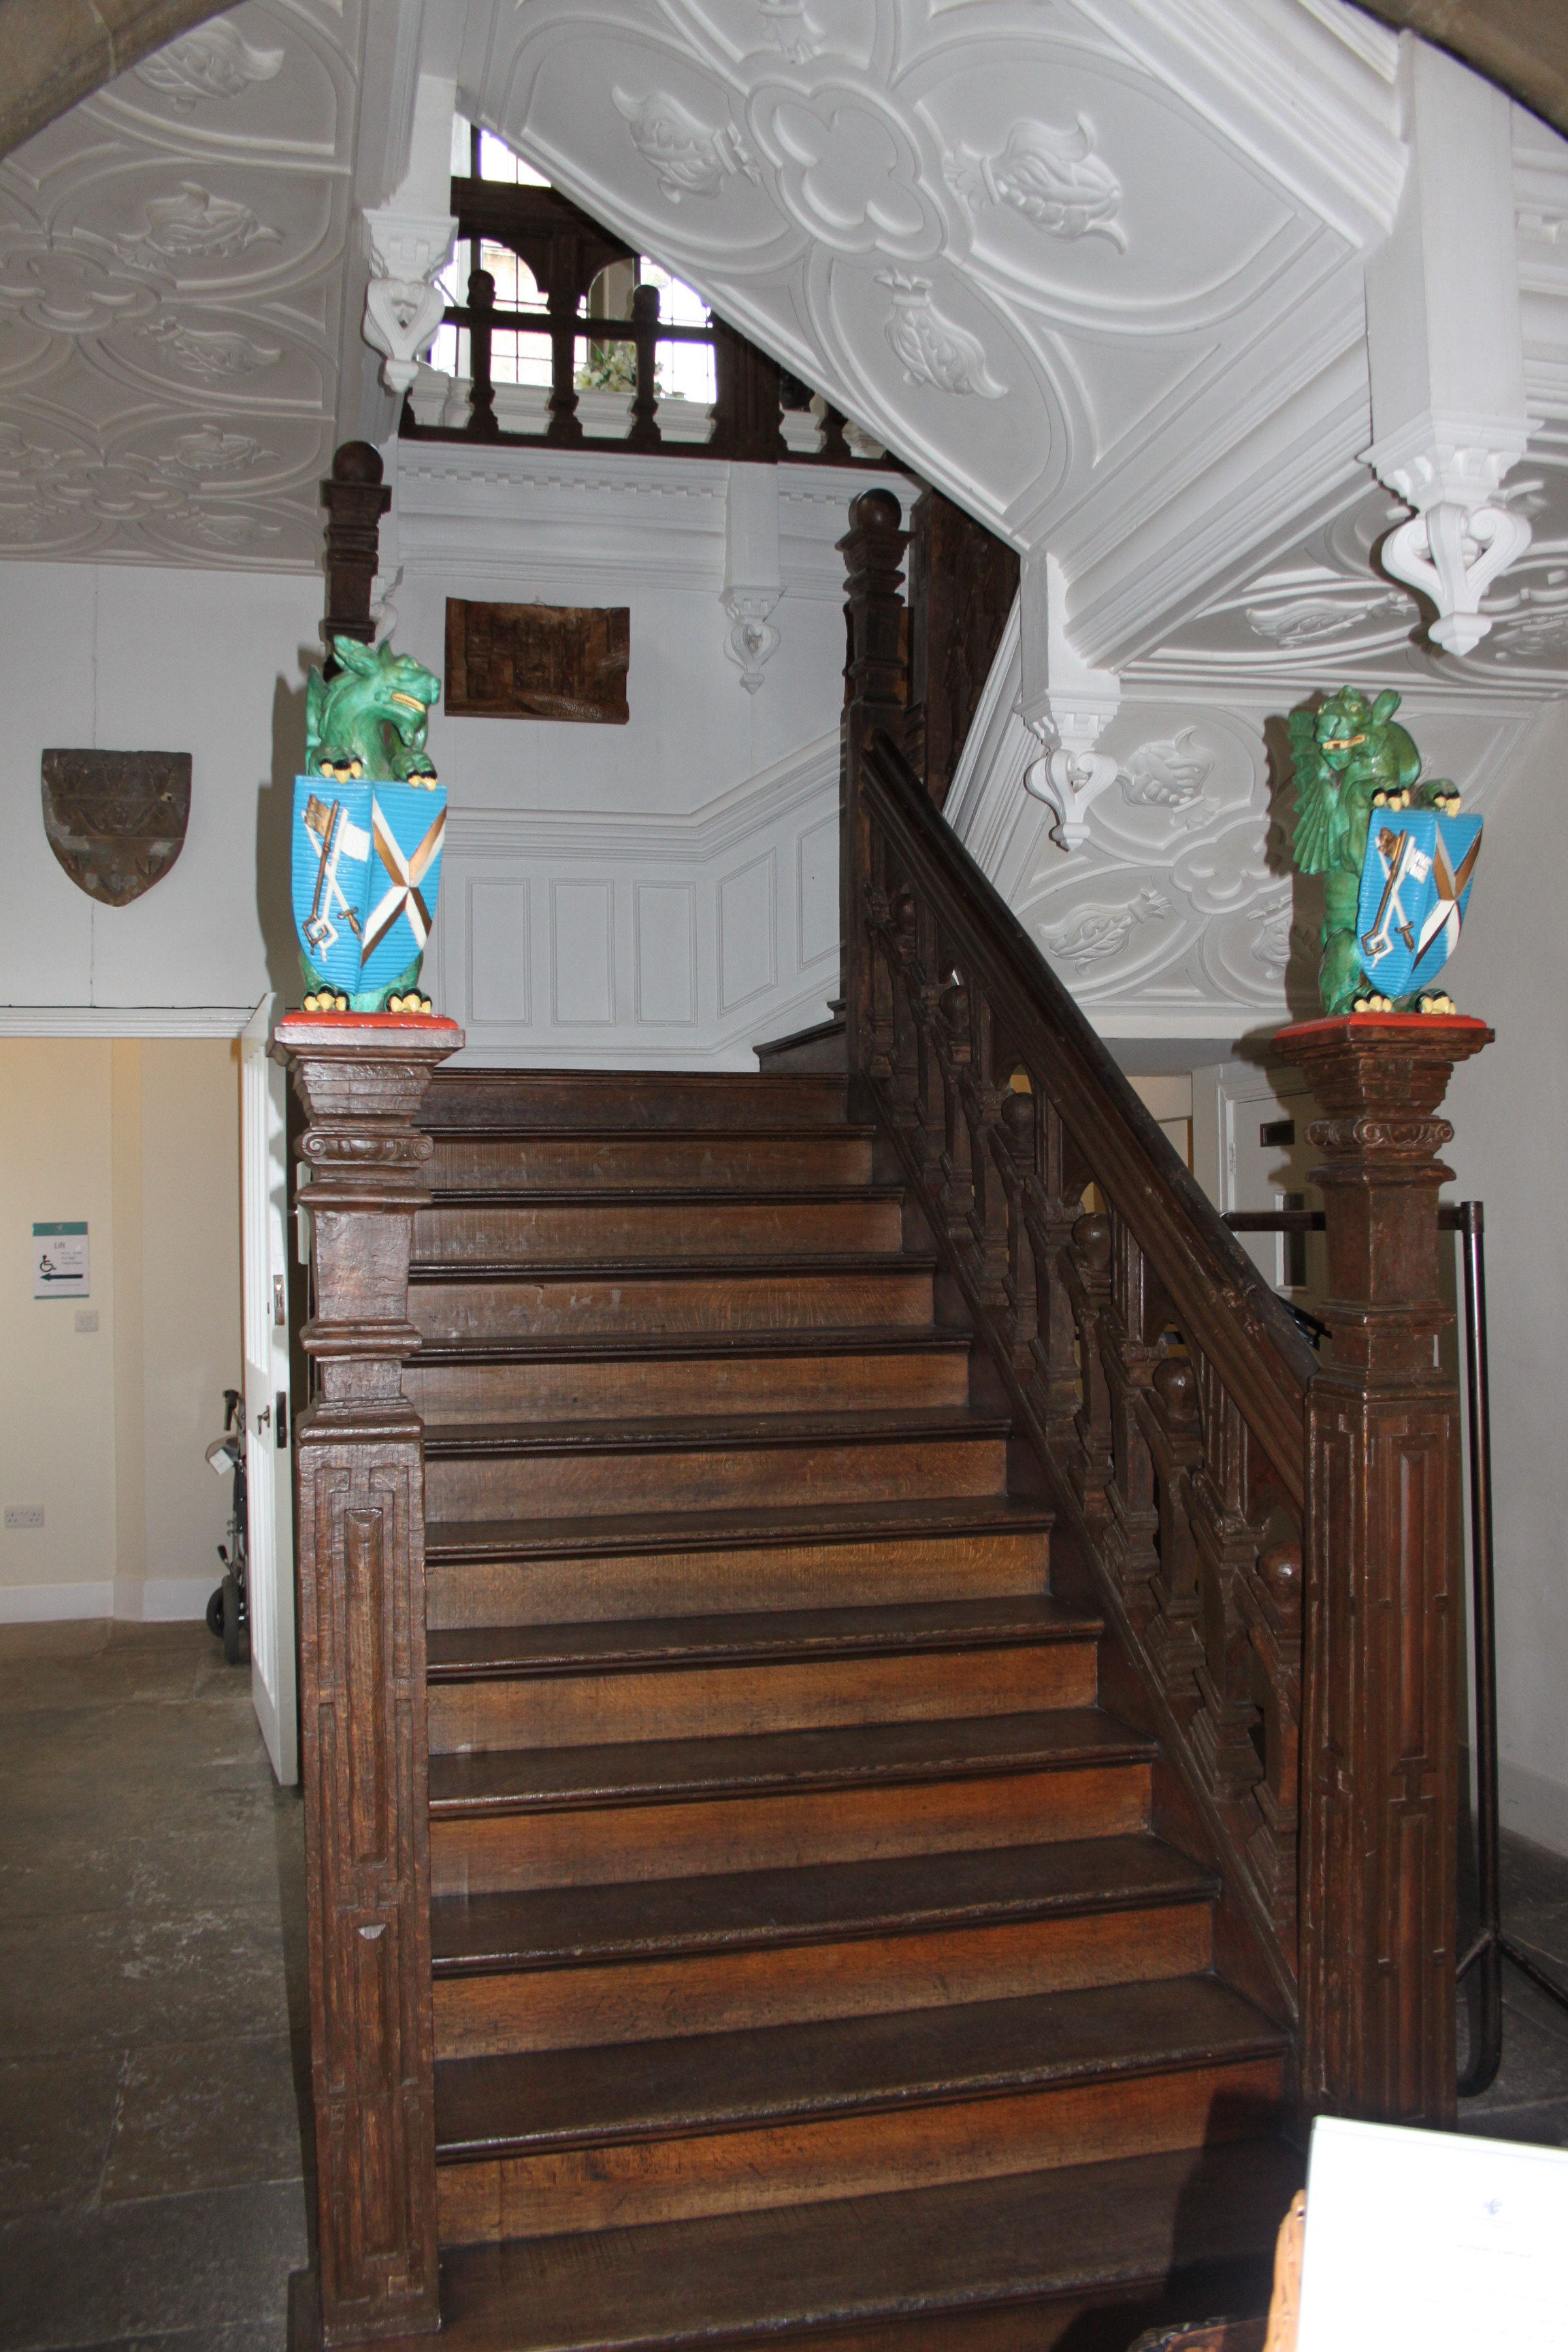 FileBishops Palace Wells Jacobean Staircase